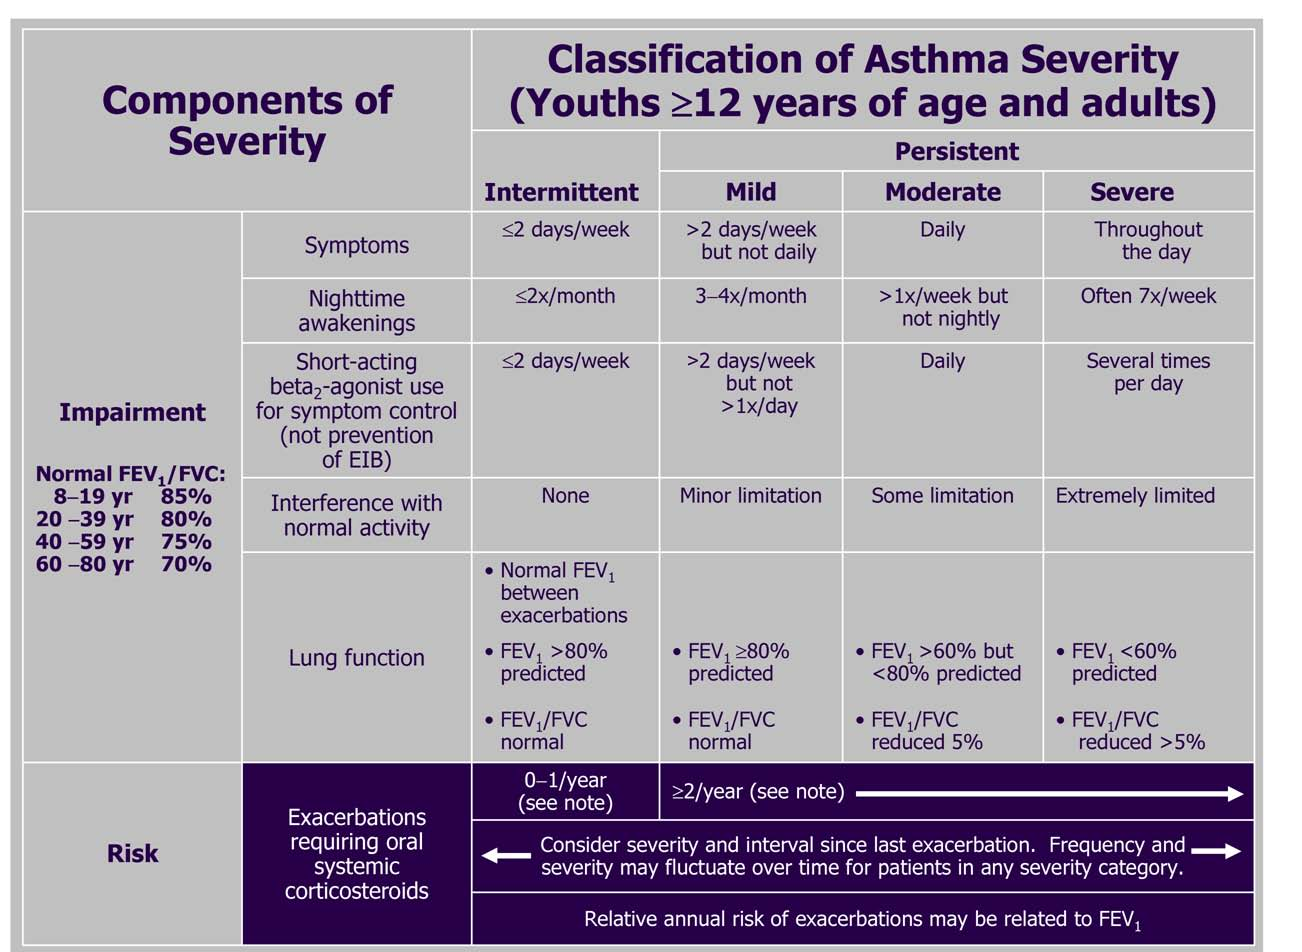 Asthma: Clinical Manifestations and Management